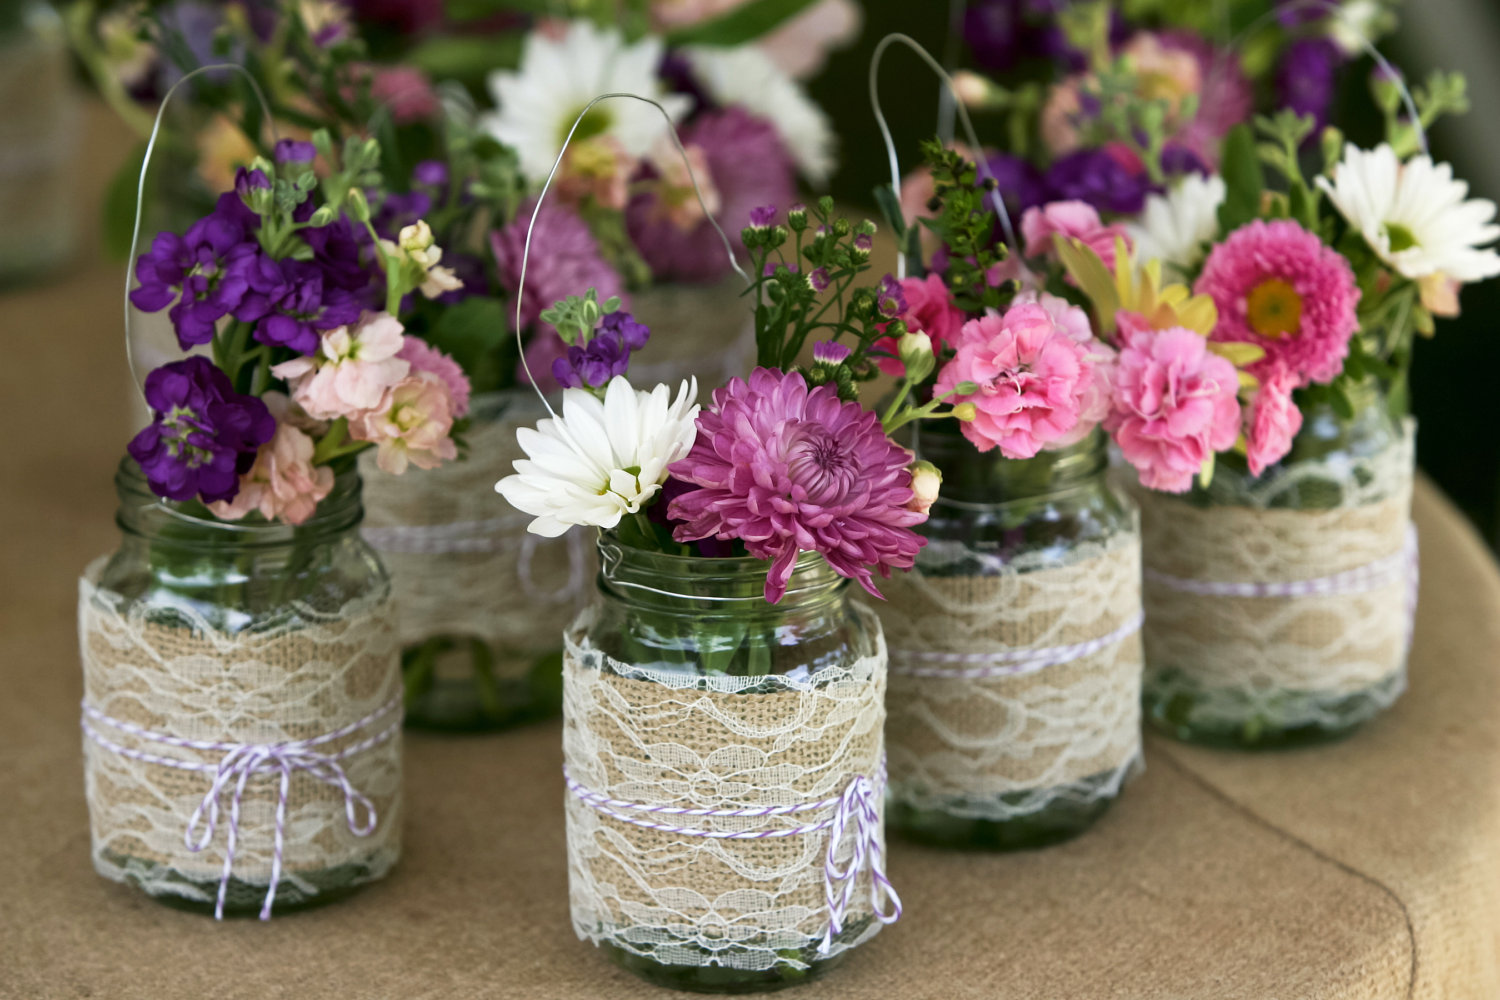 Wedding Centerpieces with Mason Jars 1500 x 1000